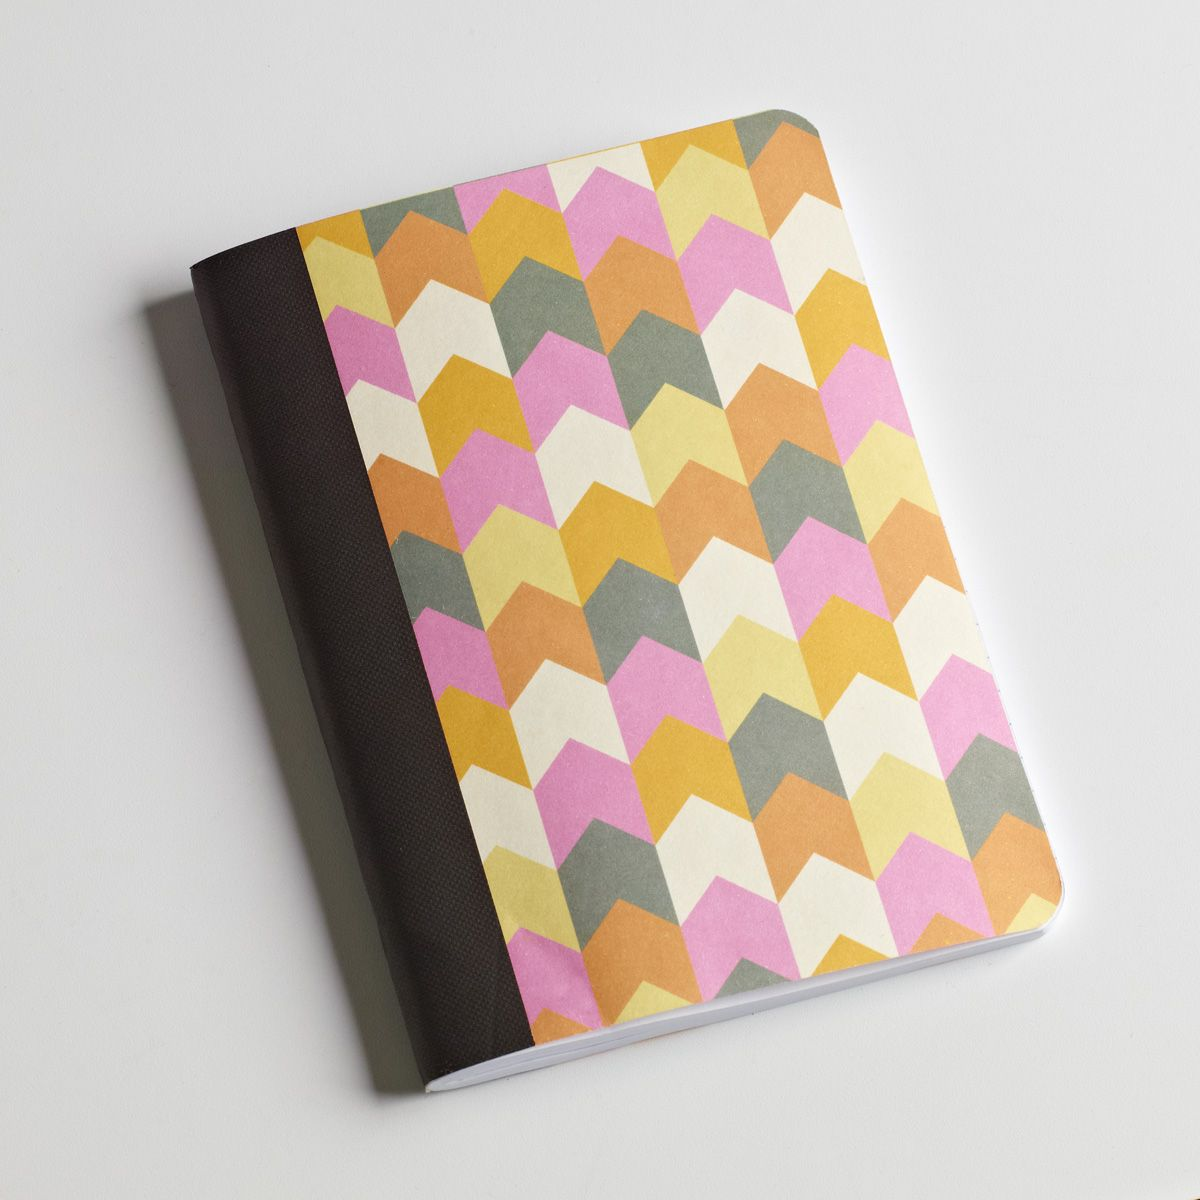 All Mixed Up collection by CarolinaPad flex personal book